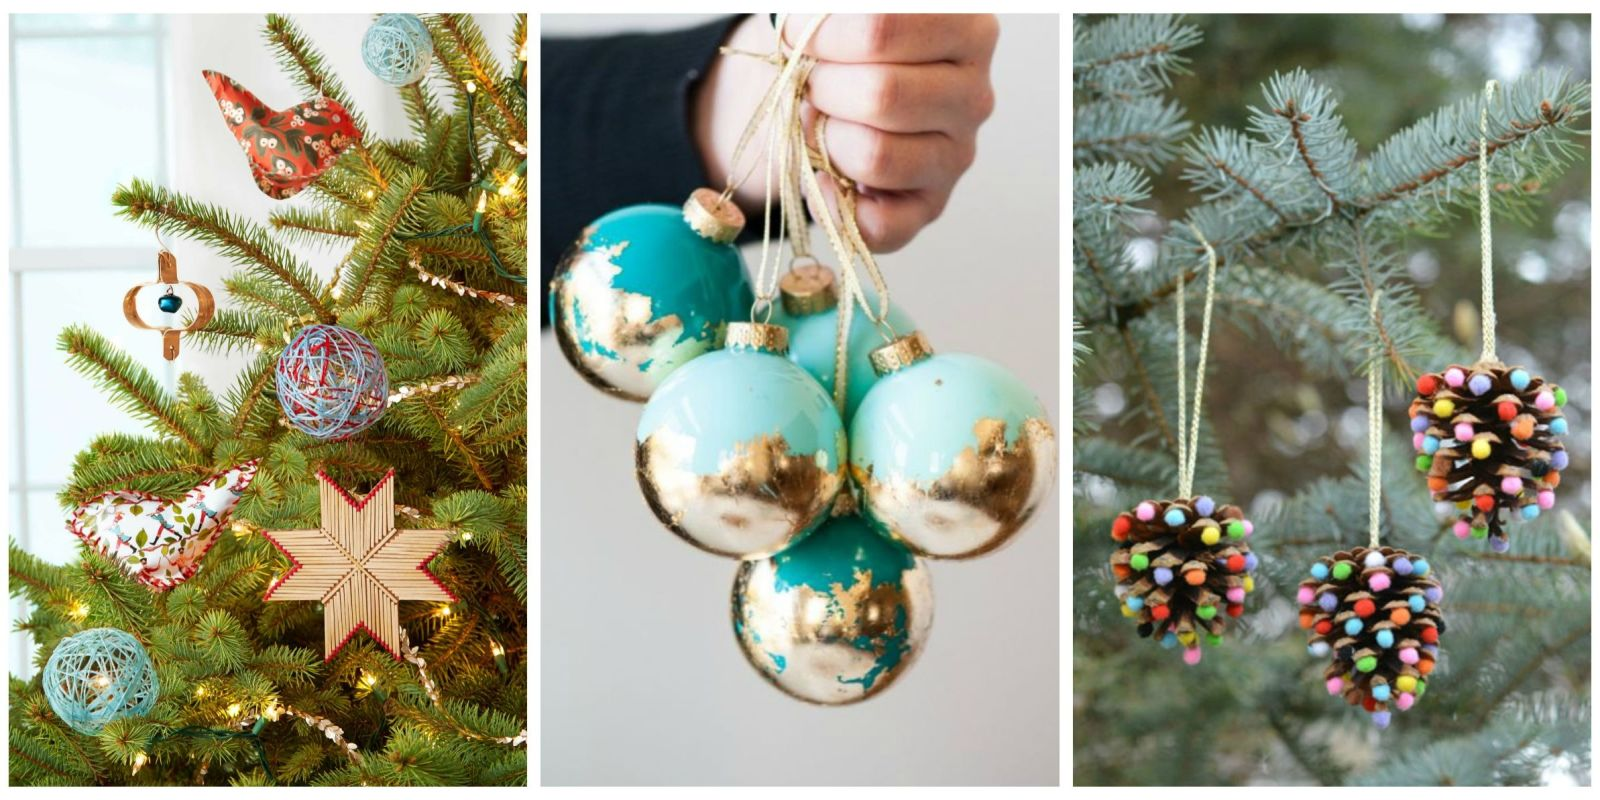 Homemade diy christmas ornament craft ideas how to